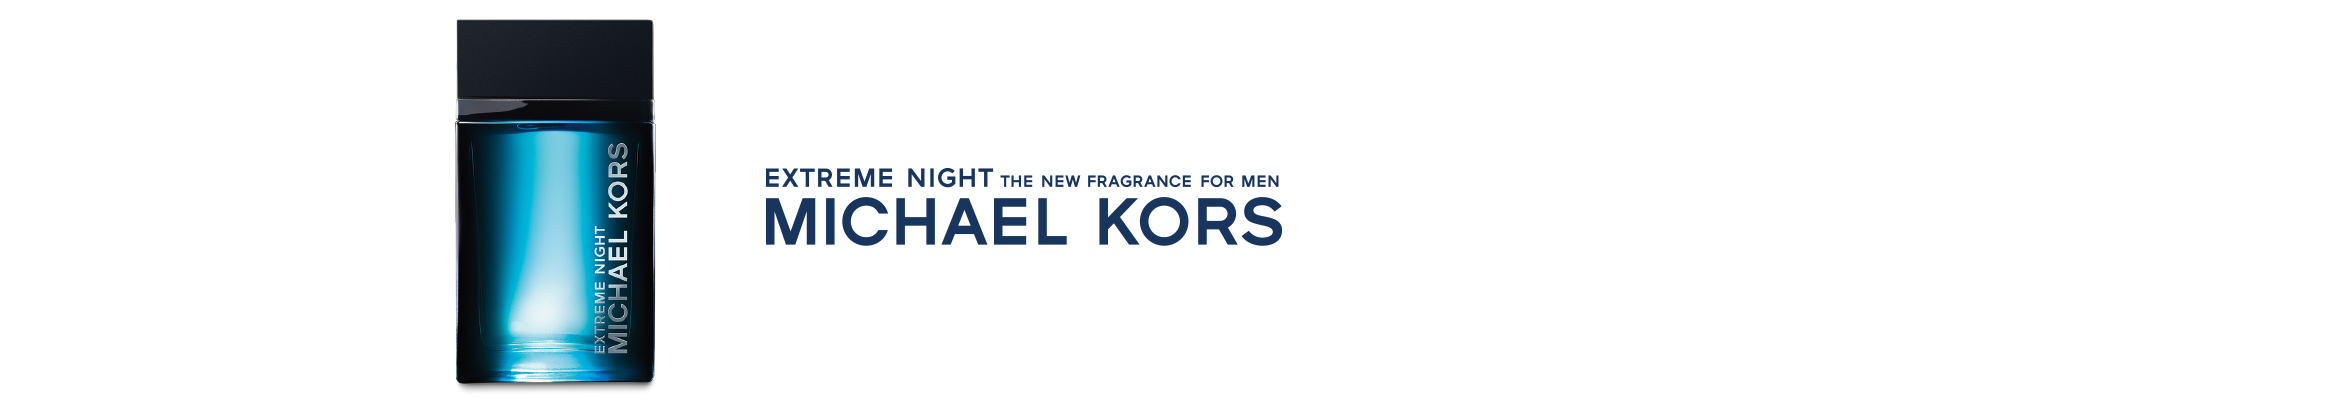 Michael-kors-NEW-brandwall-2018